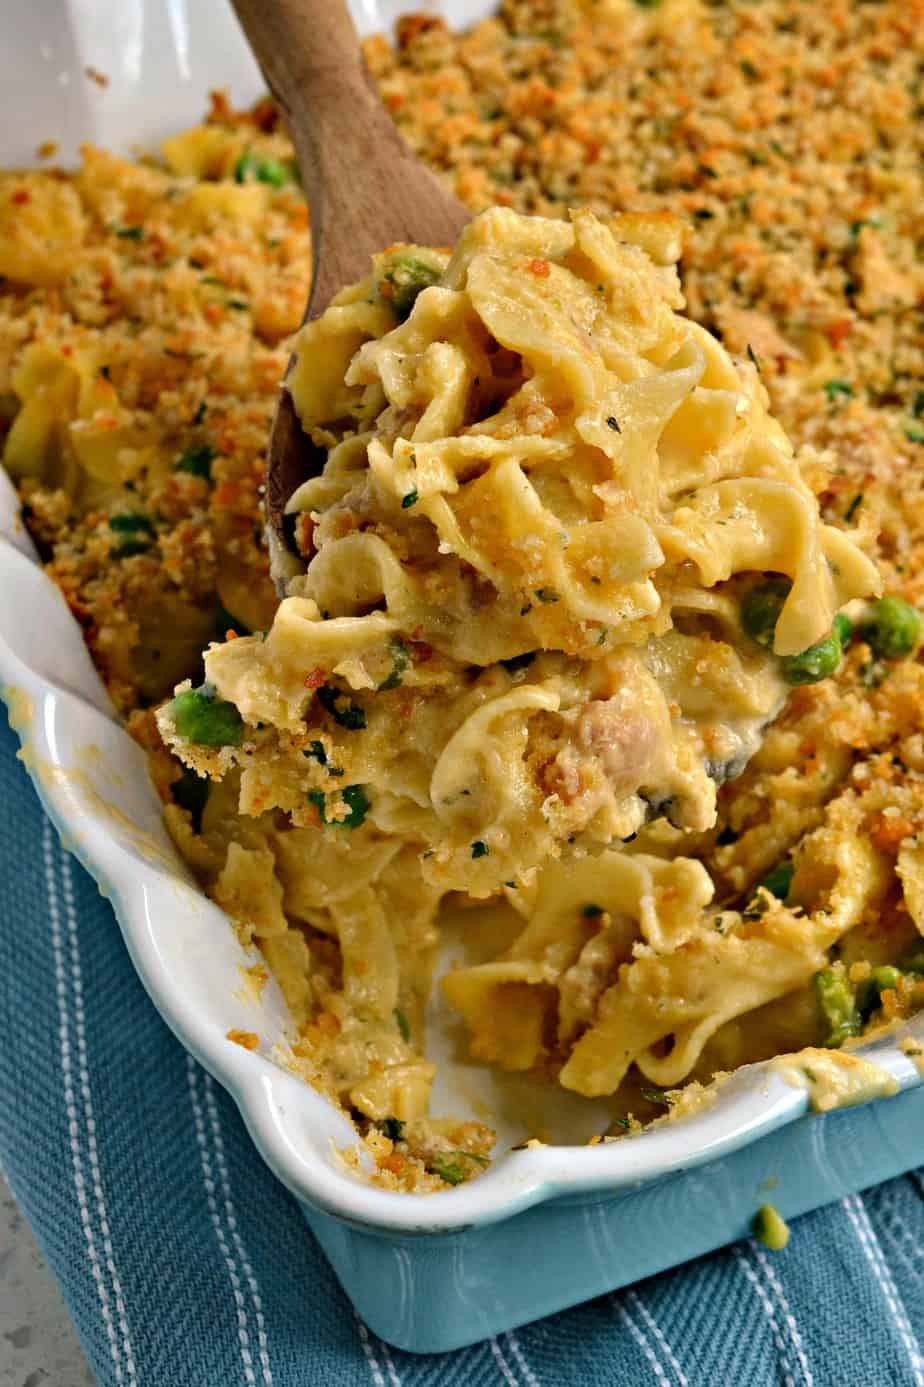 Classic Tuna Noodle Casserole has an easy to make luscious cheesy cream sauce and a simple to make breadcrumb topping.